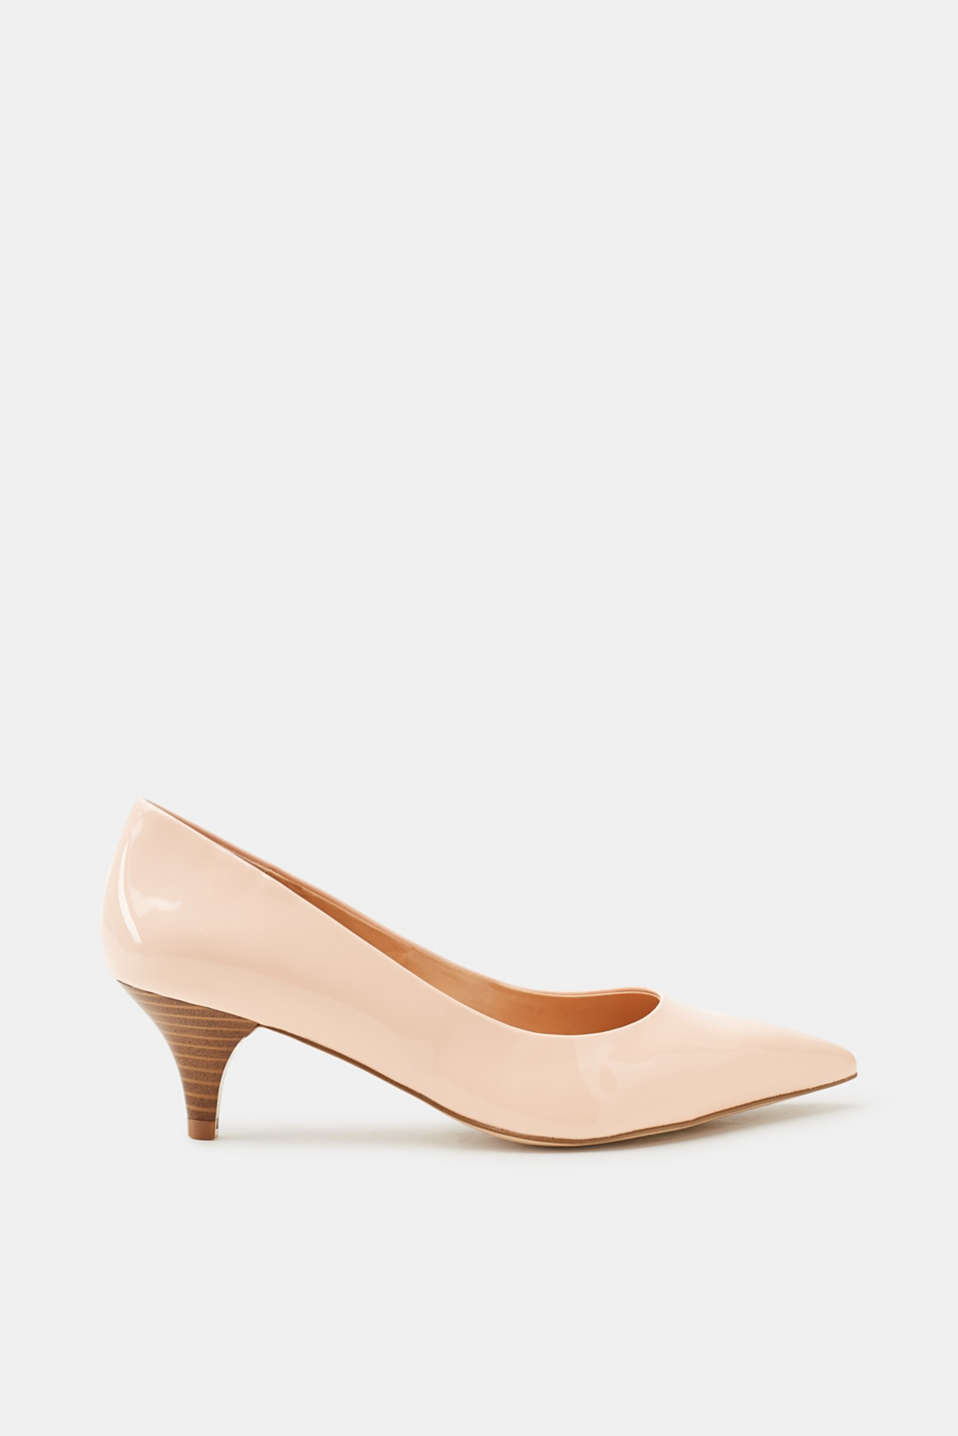 Esprit ESPRIT Veganer Pumps in Lack-Optik, natur, NUDE